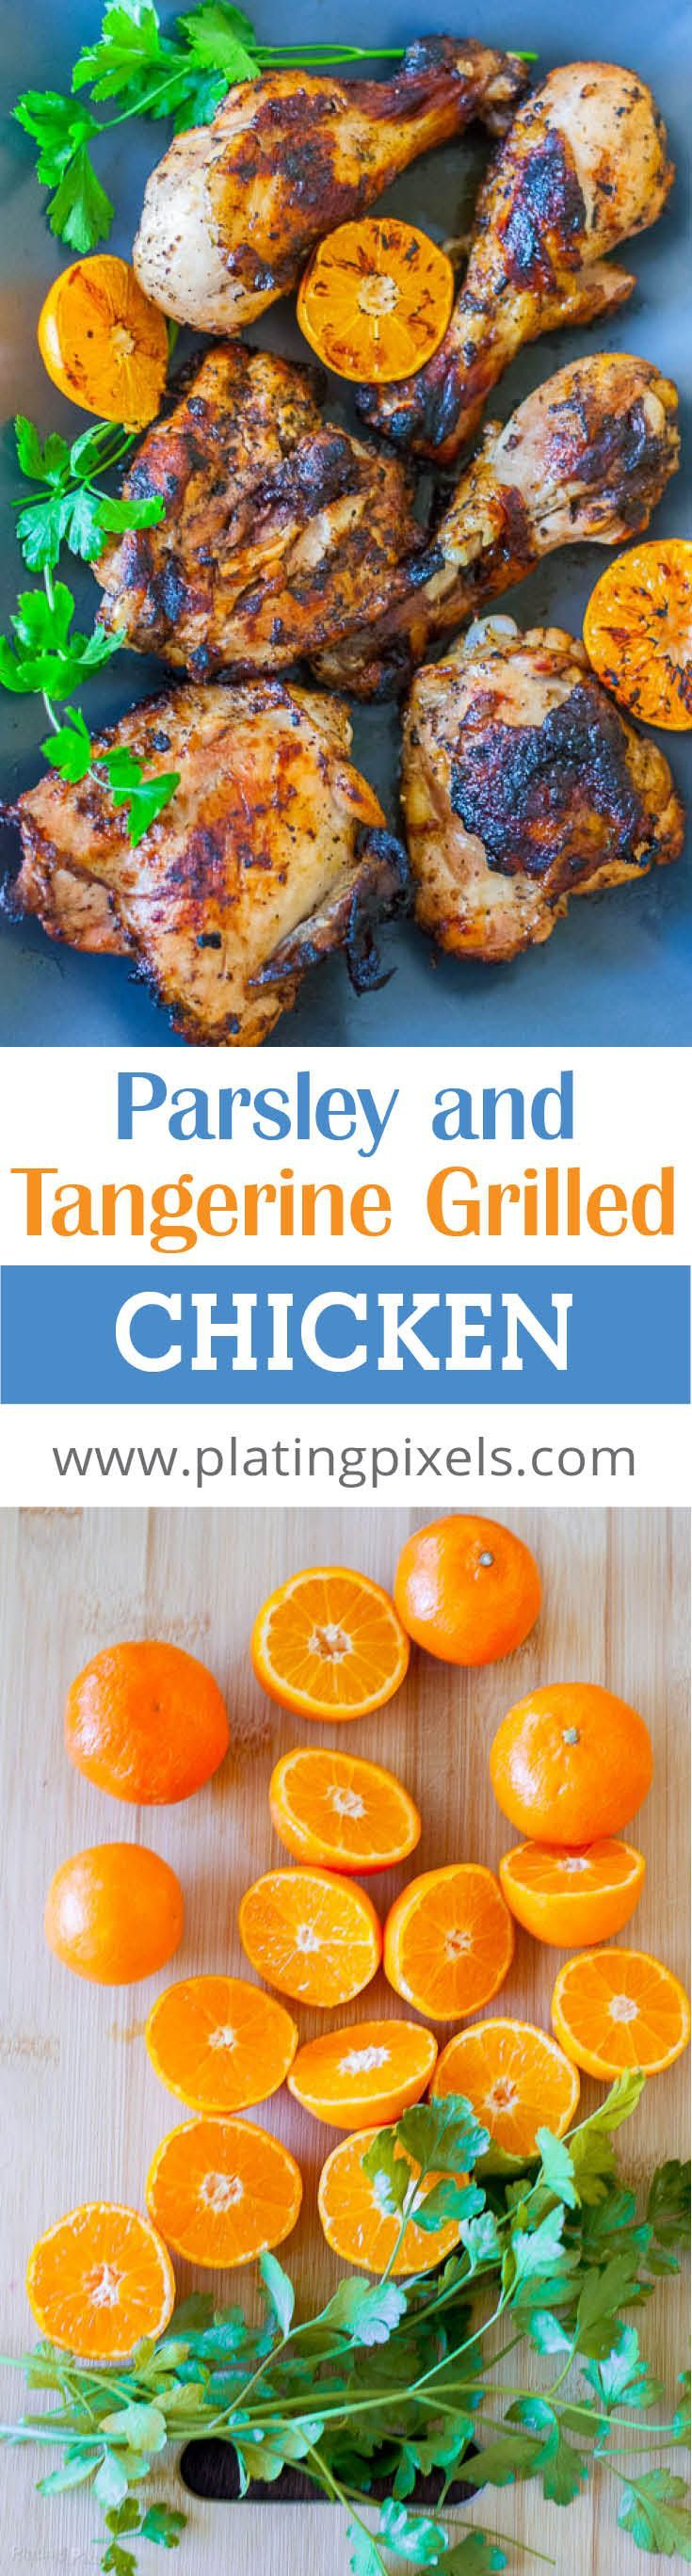 Parsley and Tangerine Marinated Grilled Chicken recipe by Plating Pixels. Moist grilled chicken drumsticks and thighs marinated in a sweet and citrusy tangerine marinade. - www.platingpixels.com